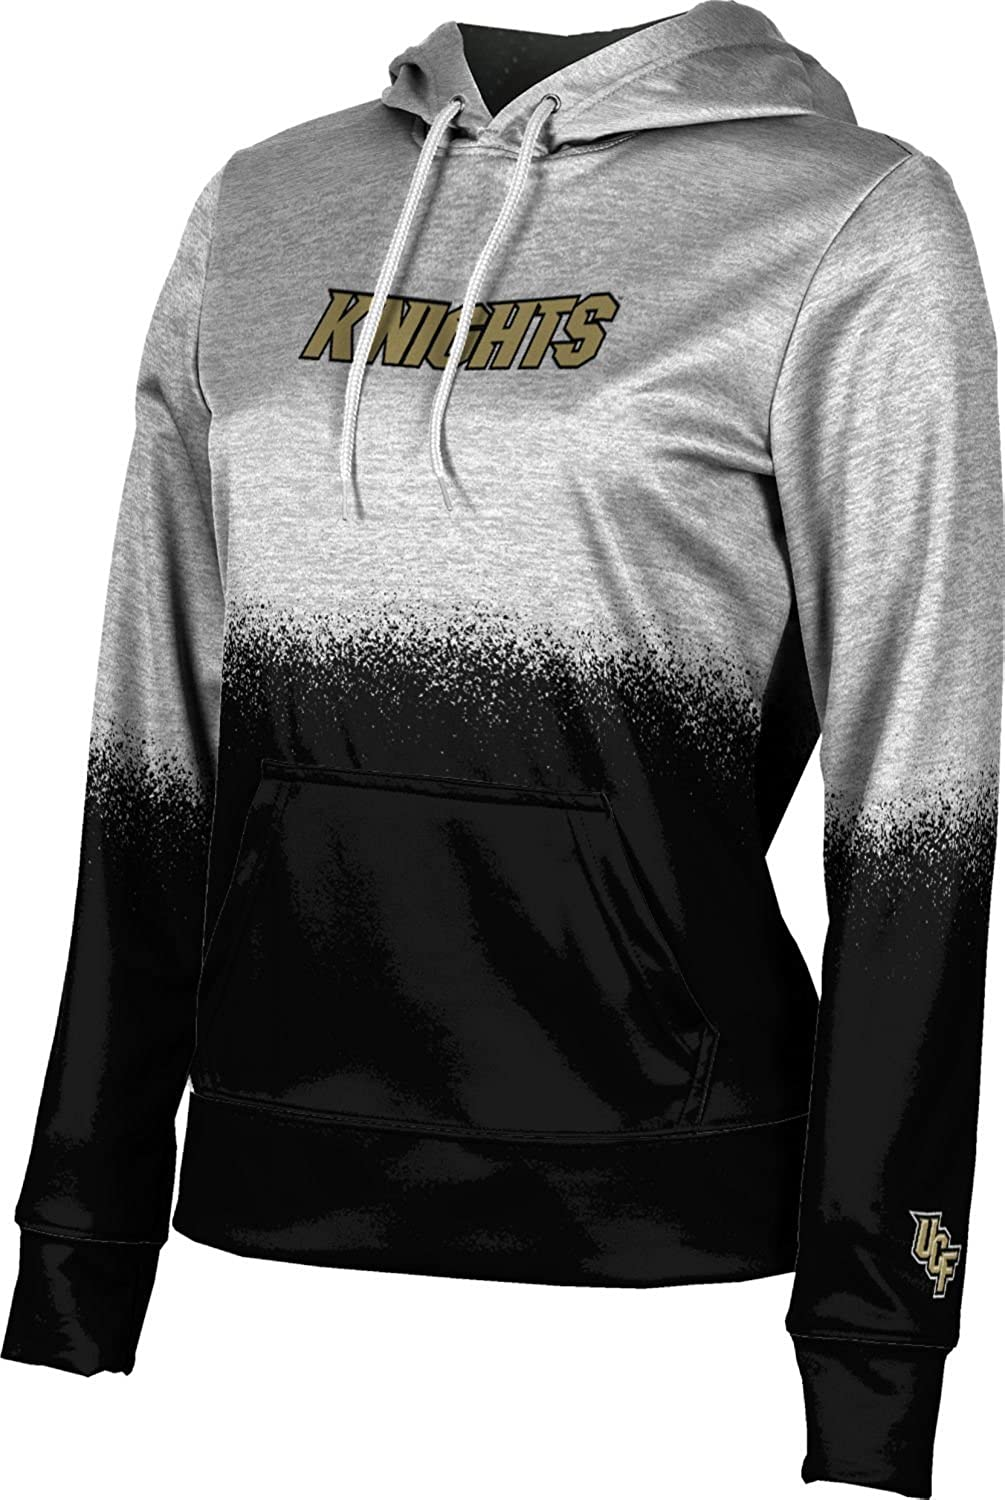 School Spirit Sweatshirt ProSphere University of Central Florida Girls Pullover Hoodie Spray Over